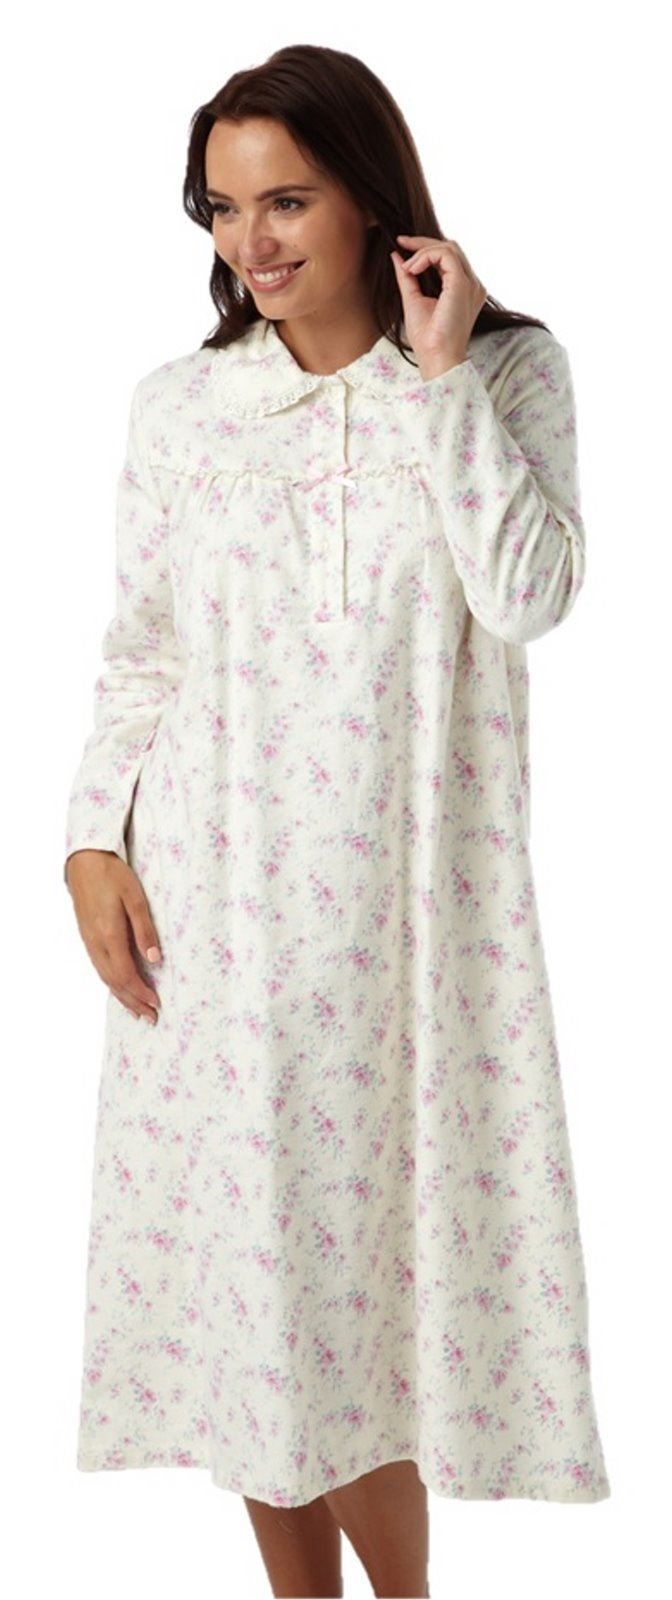 Women's Sleepwear: The Best Pajamas, Nightgowns, Chemises and More Lingerie is lovely, but sometimes there's nothing better than padding around in your most comfortable PJs and, thanks to our superior sleepwear selection, you can look stylish at the same time.